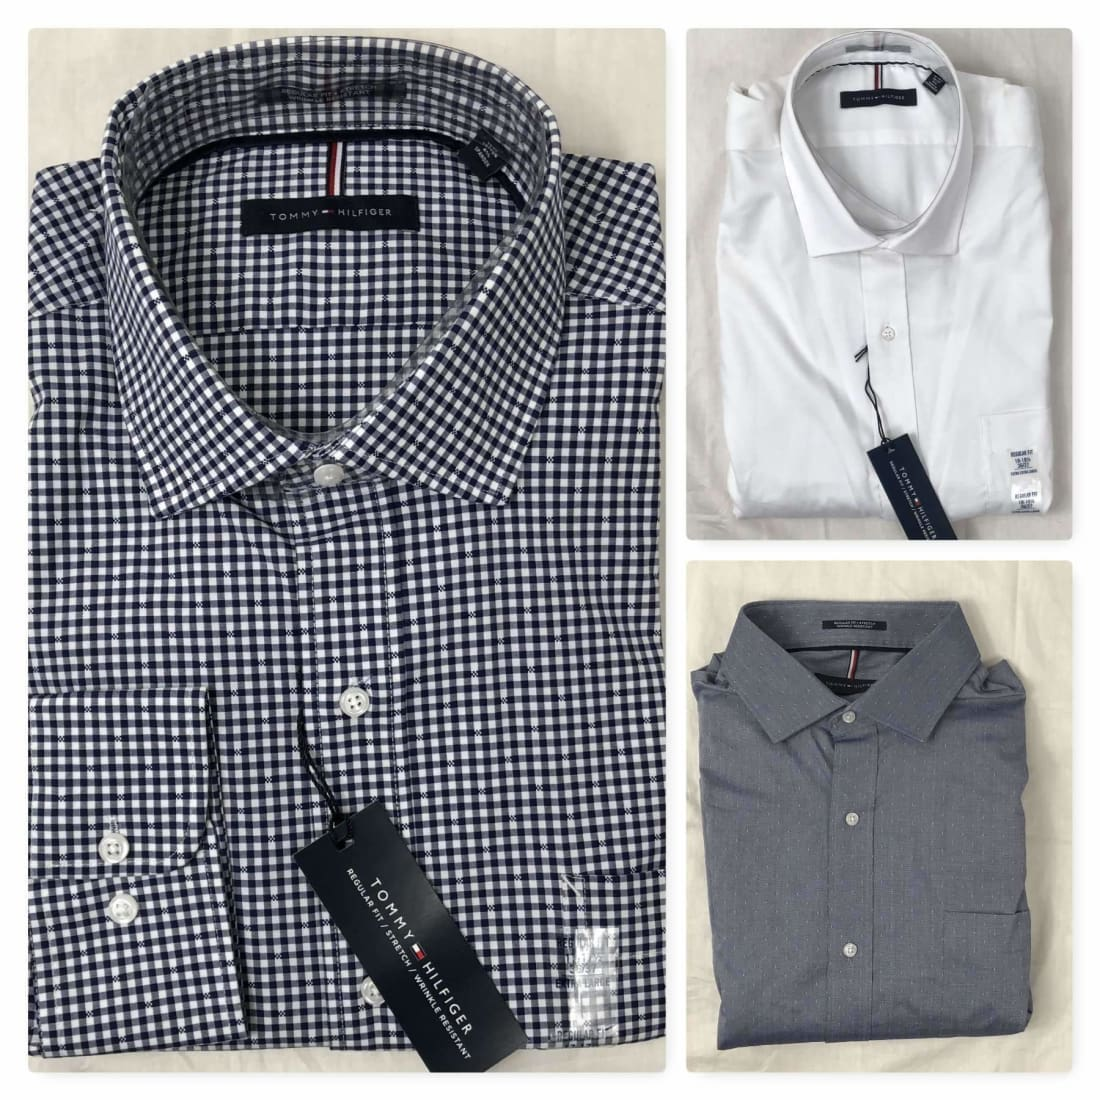 Tommy Hilfiger Regular Fit Button Front Dress Shirt Dress Shirts